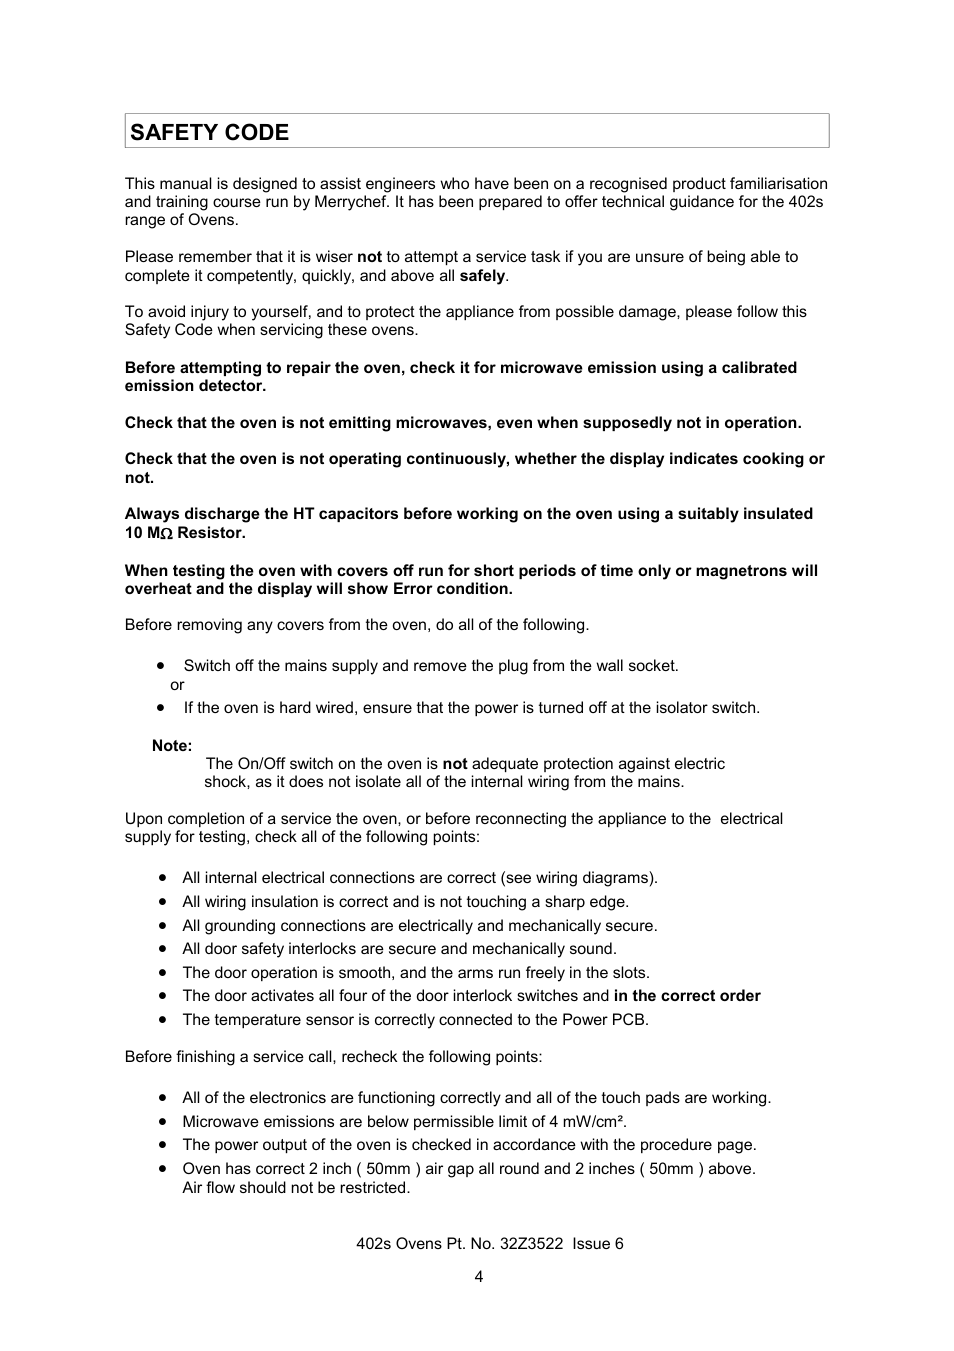 Safety code | Merrychef 402s User Manual | Page 4 / 51